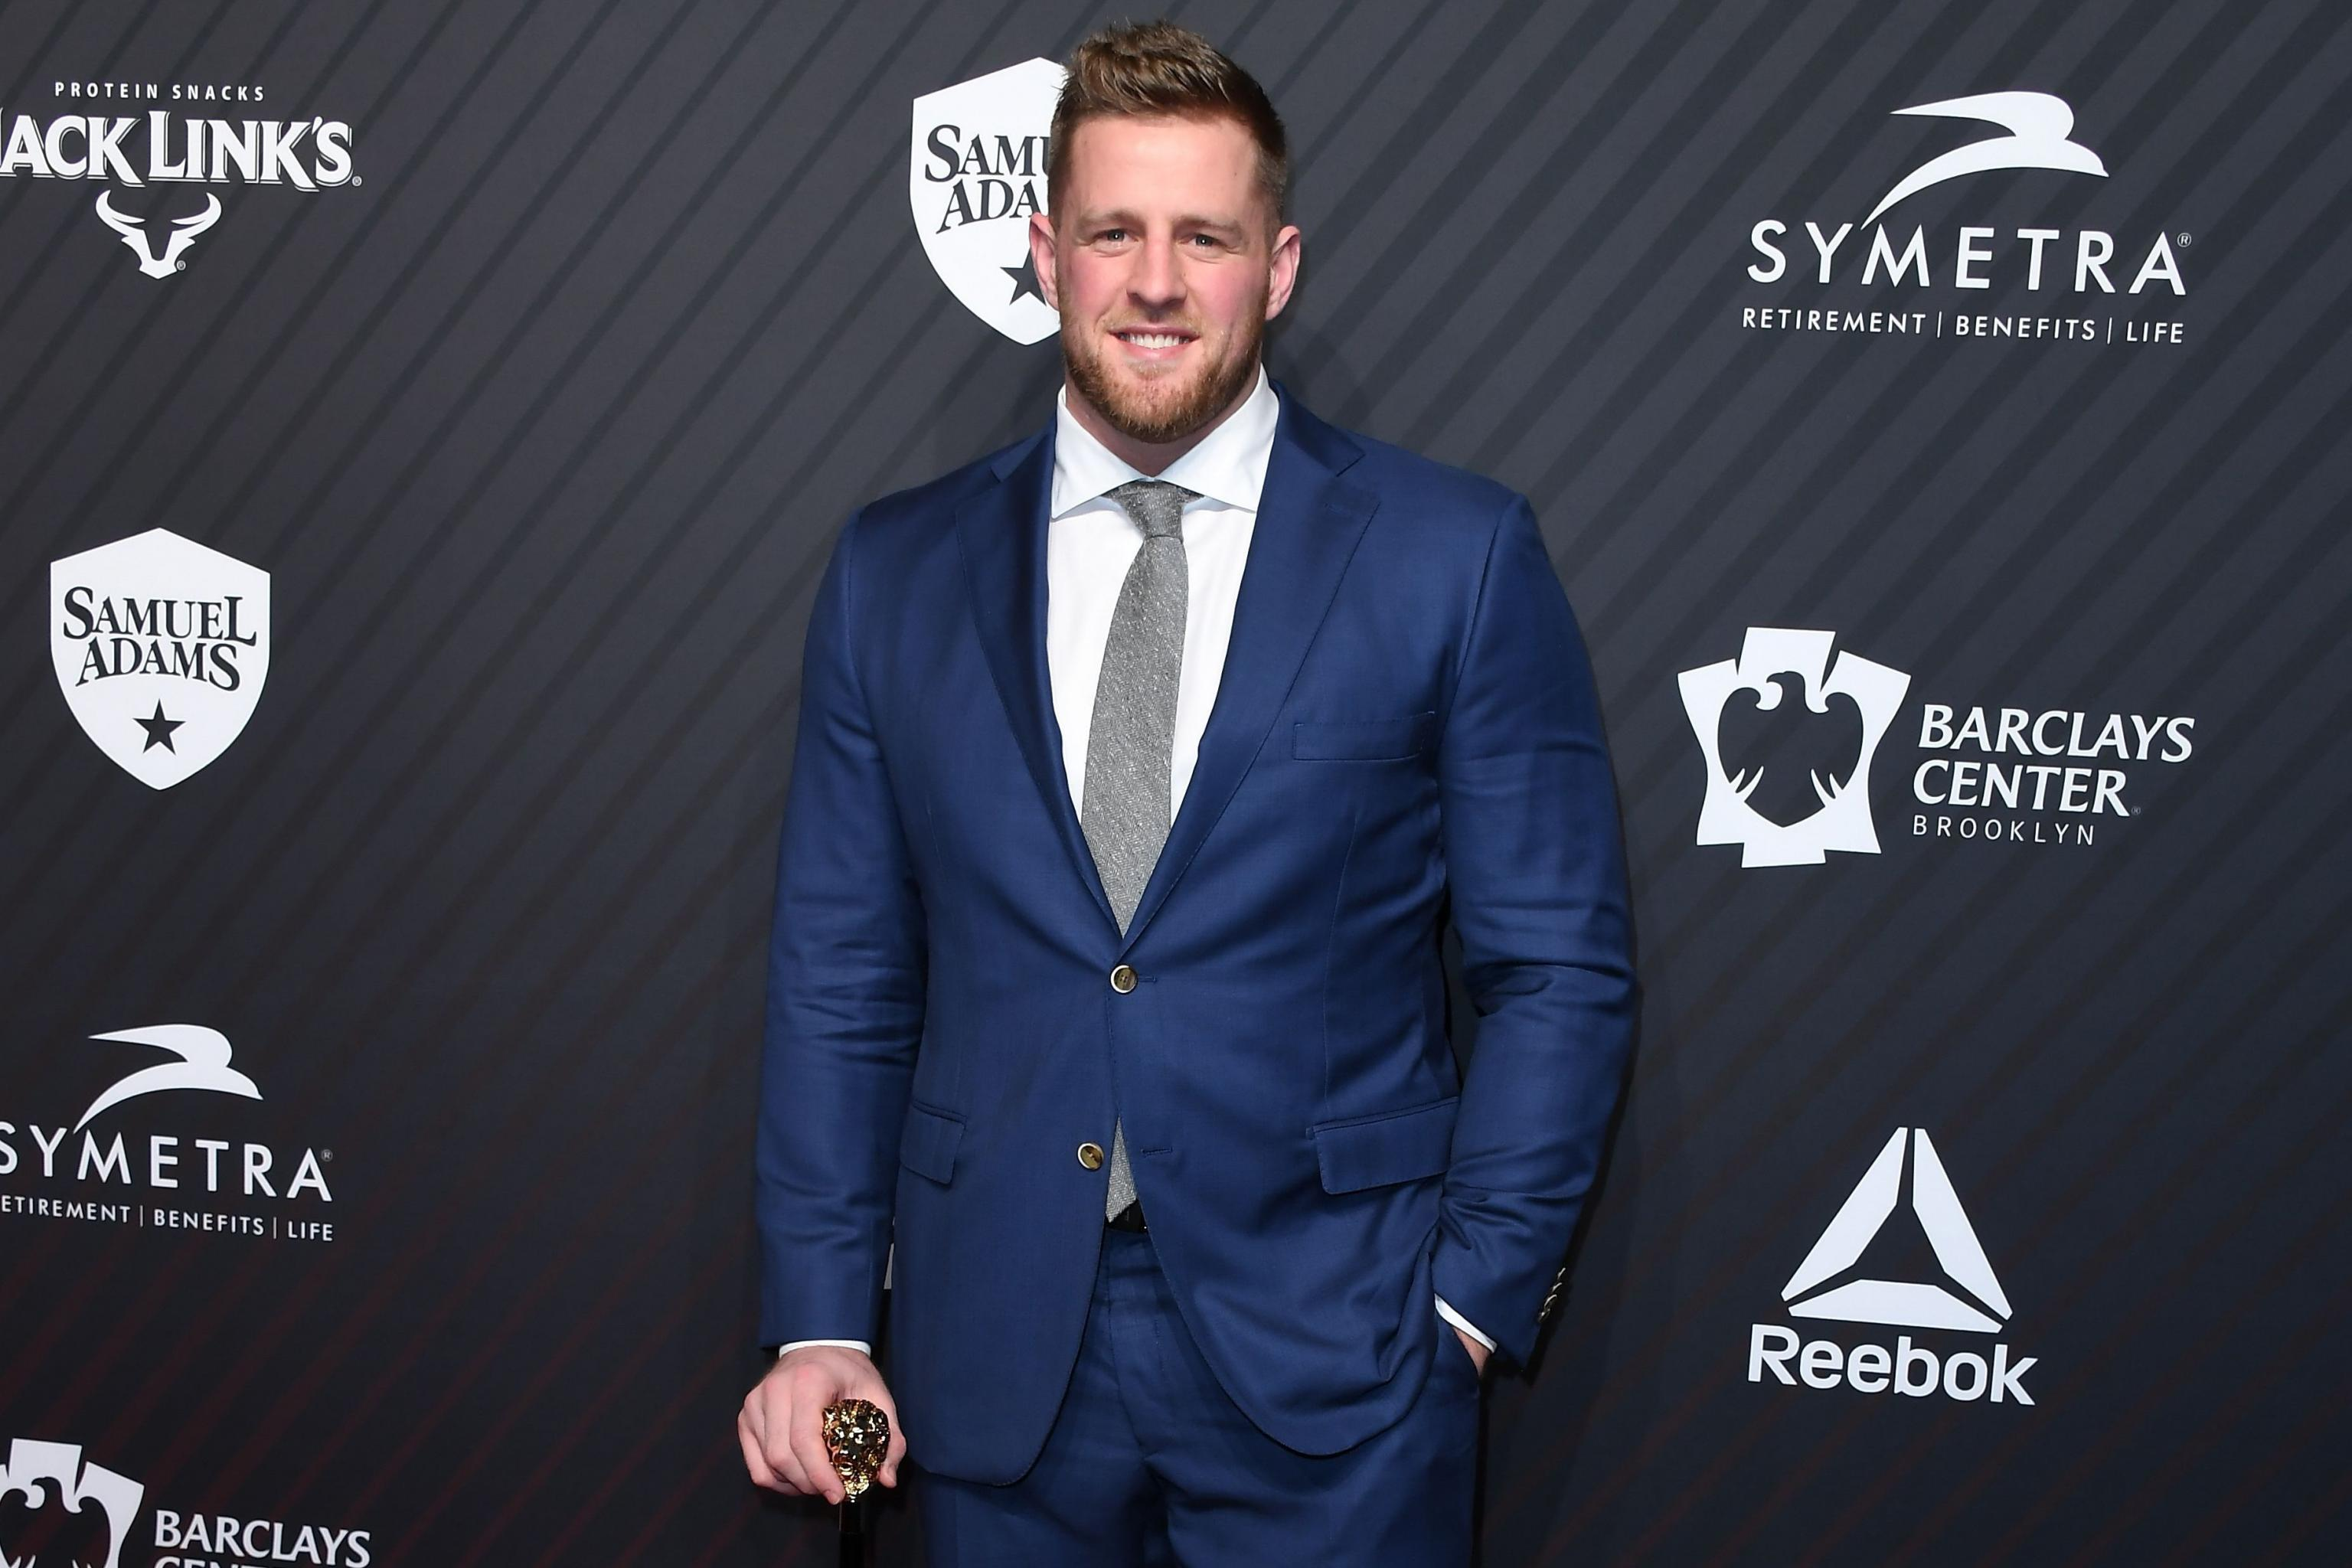 finest selection e9bbf 01c55 J.J. Watt Wins NFL's 2017-18 Walter Payton Man of the Year ...